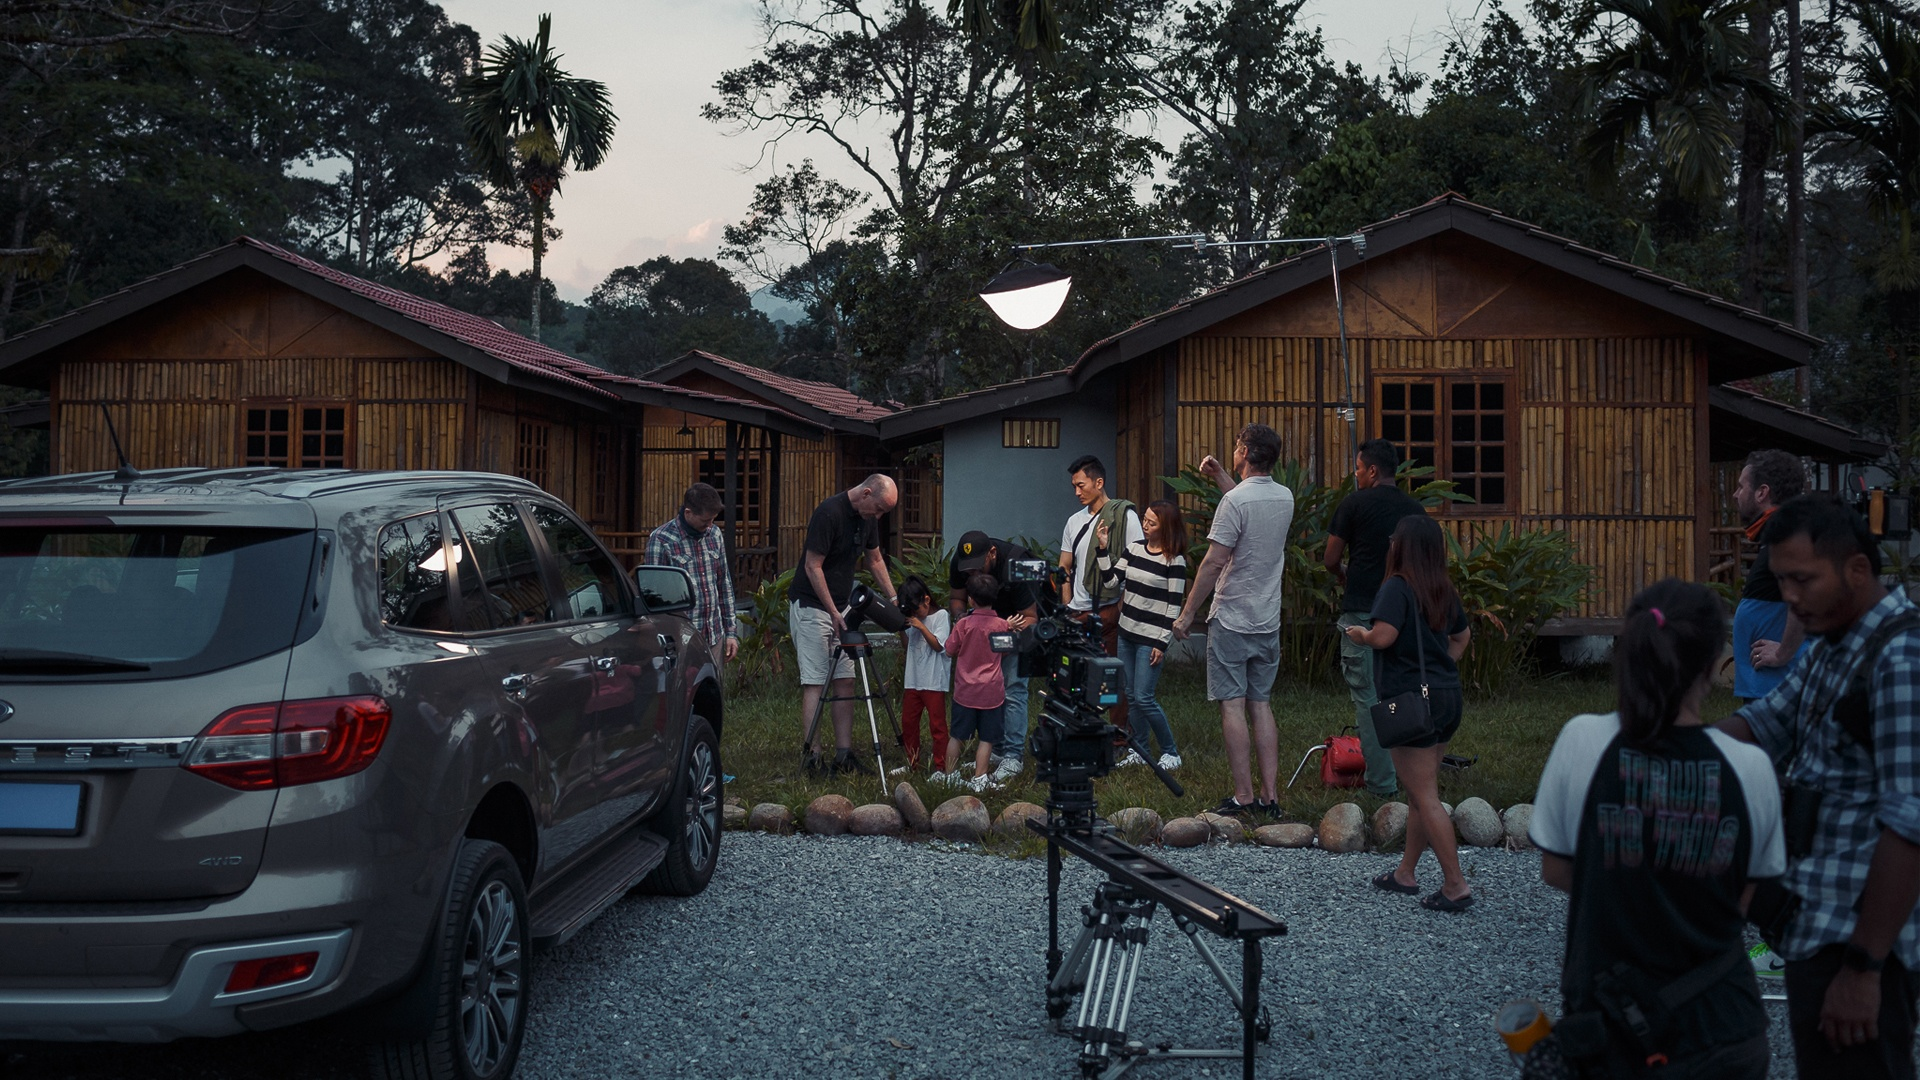 Behind the scenes shot of a recent Castrol MAGNATEC product film shoot in Malaysia